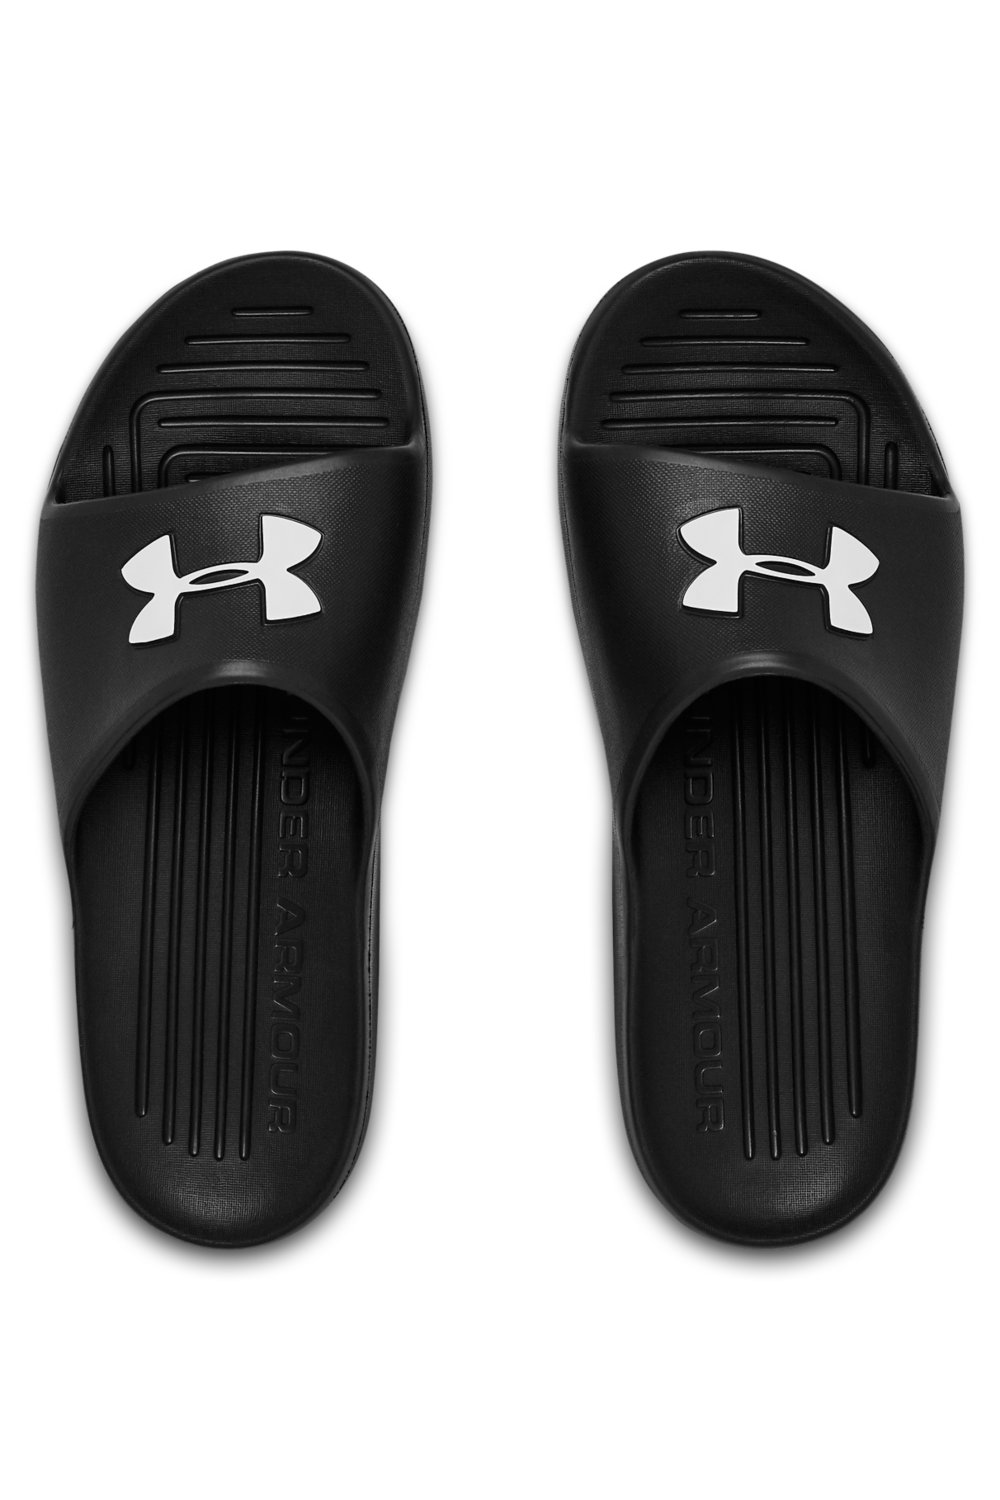 Under Armour black slippers Core Pth